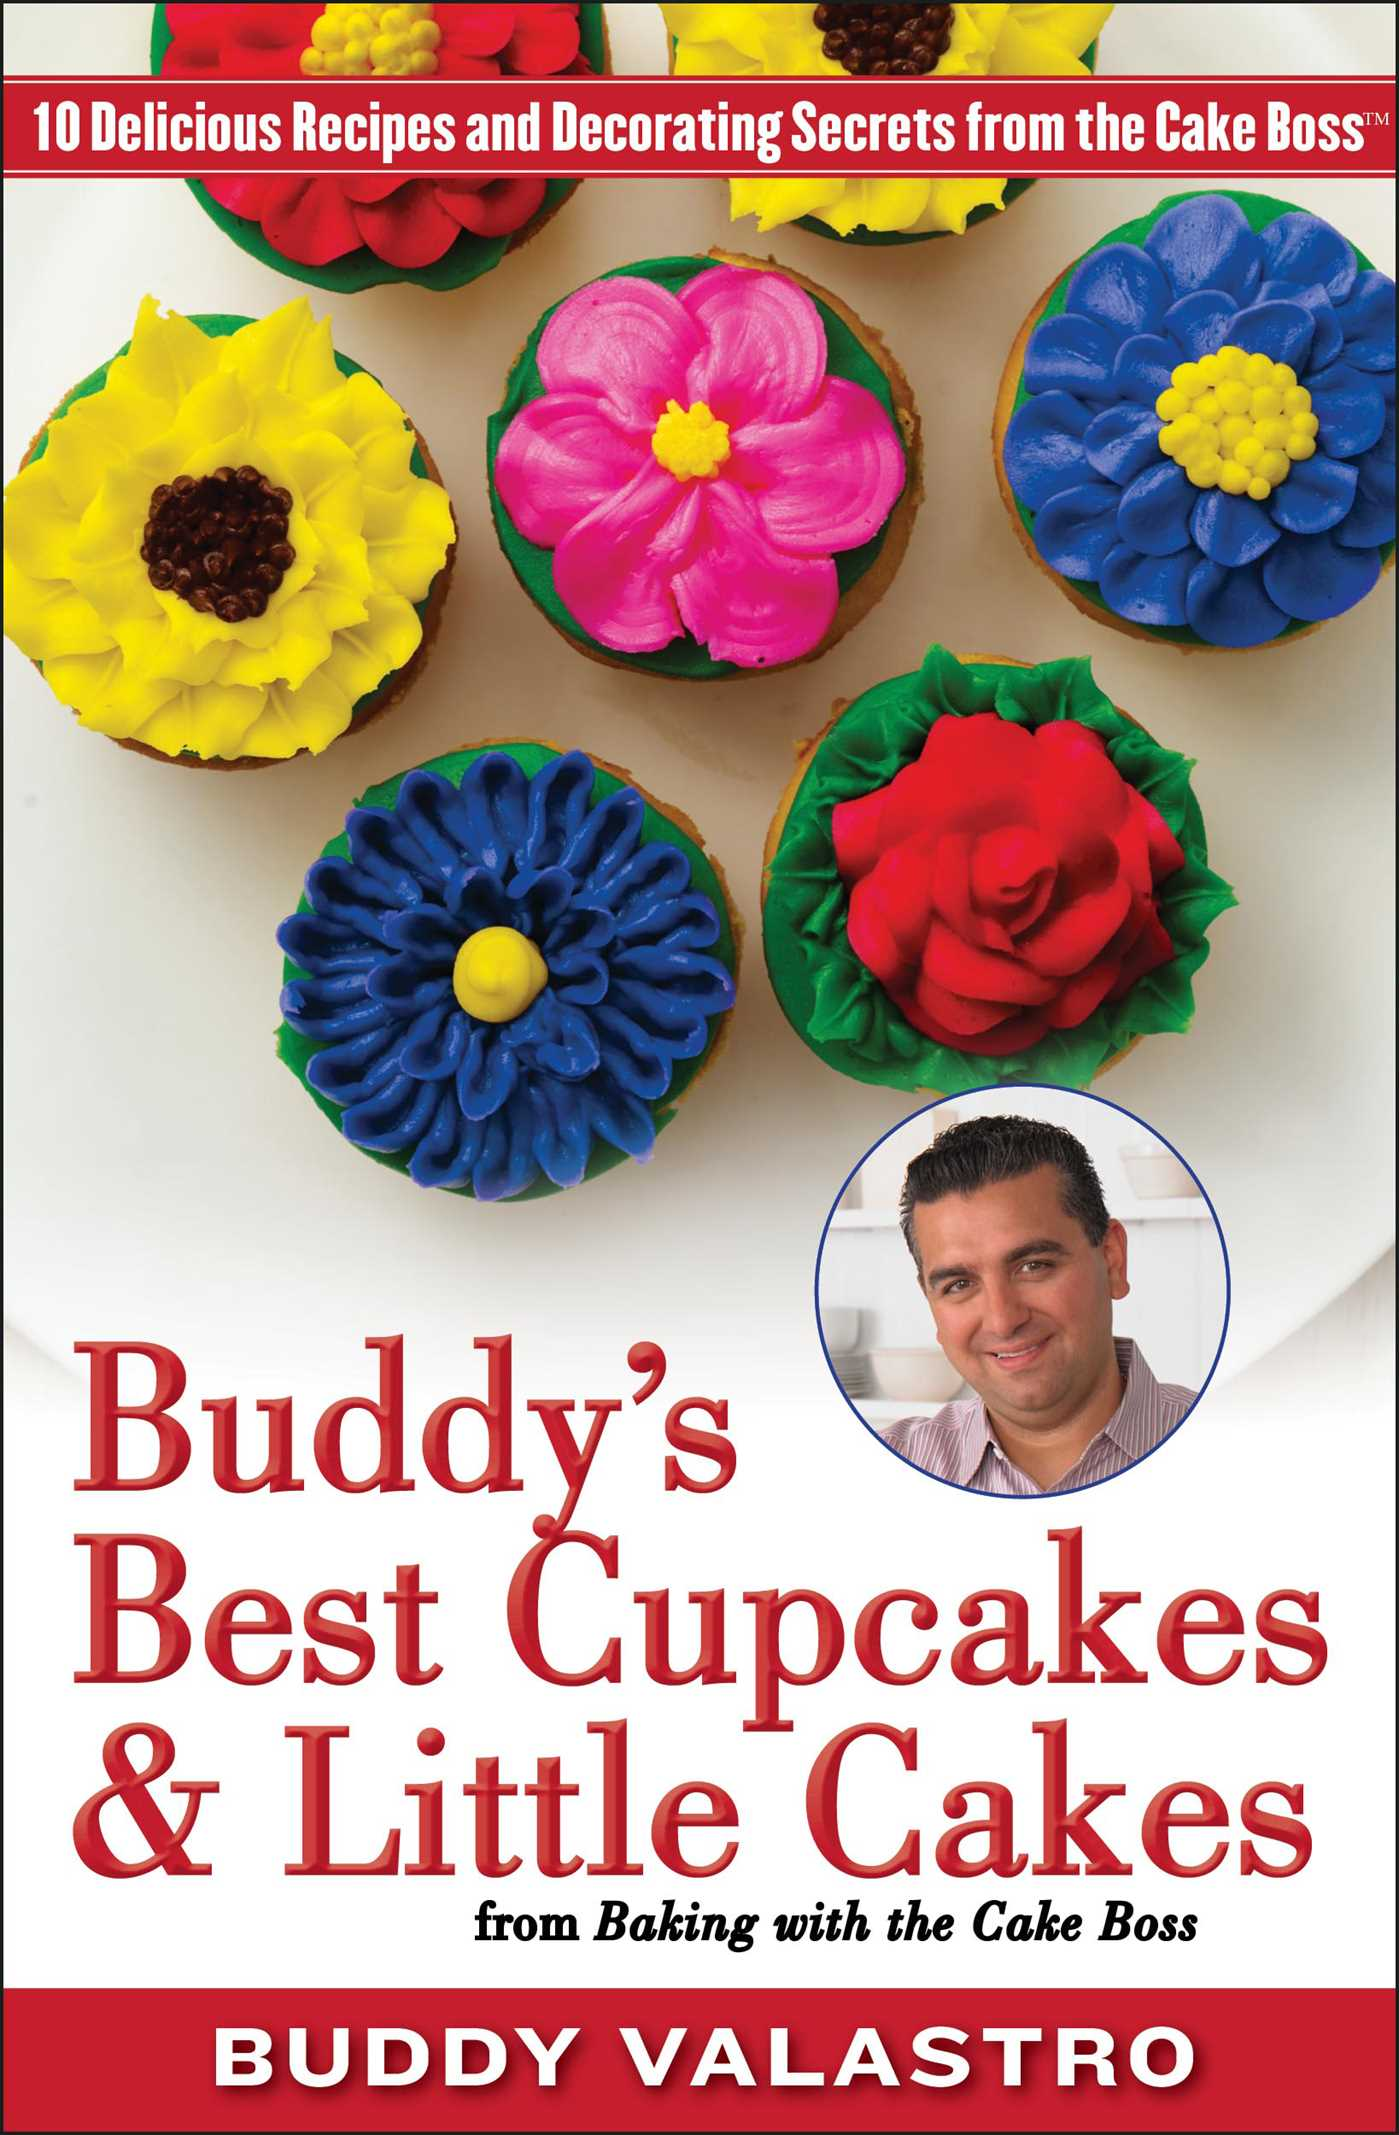 Buddys best cupcakes little cakes from baking with the cake boss 9781476725505 hr